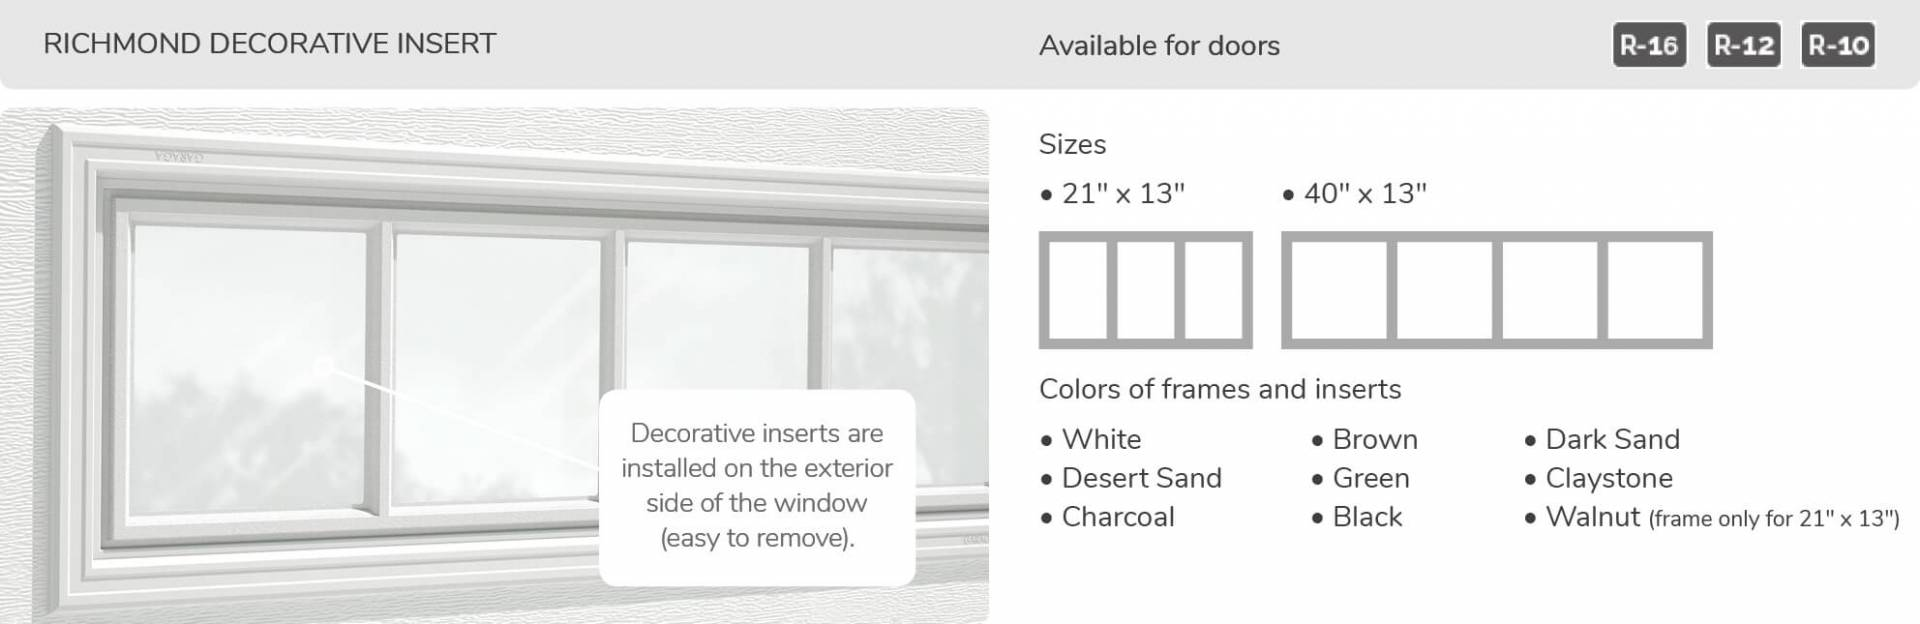 Richmond Decorative Inserts, 21' x 13' and 40' x 13', available for doors R-16, R-12, R-10